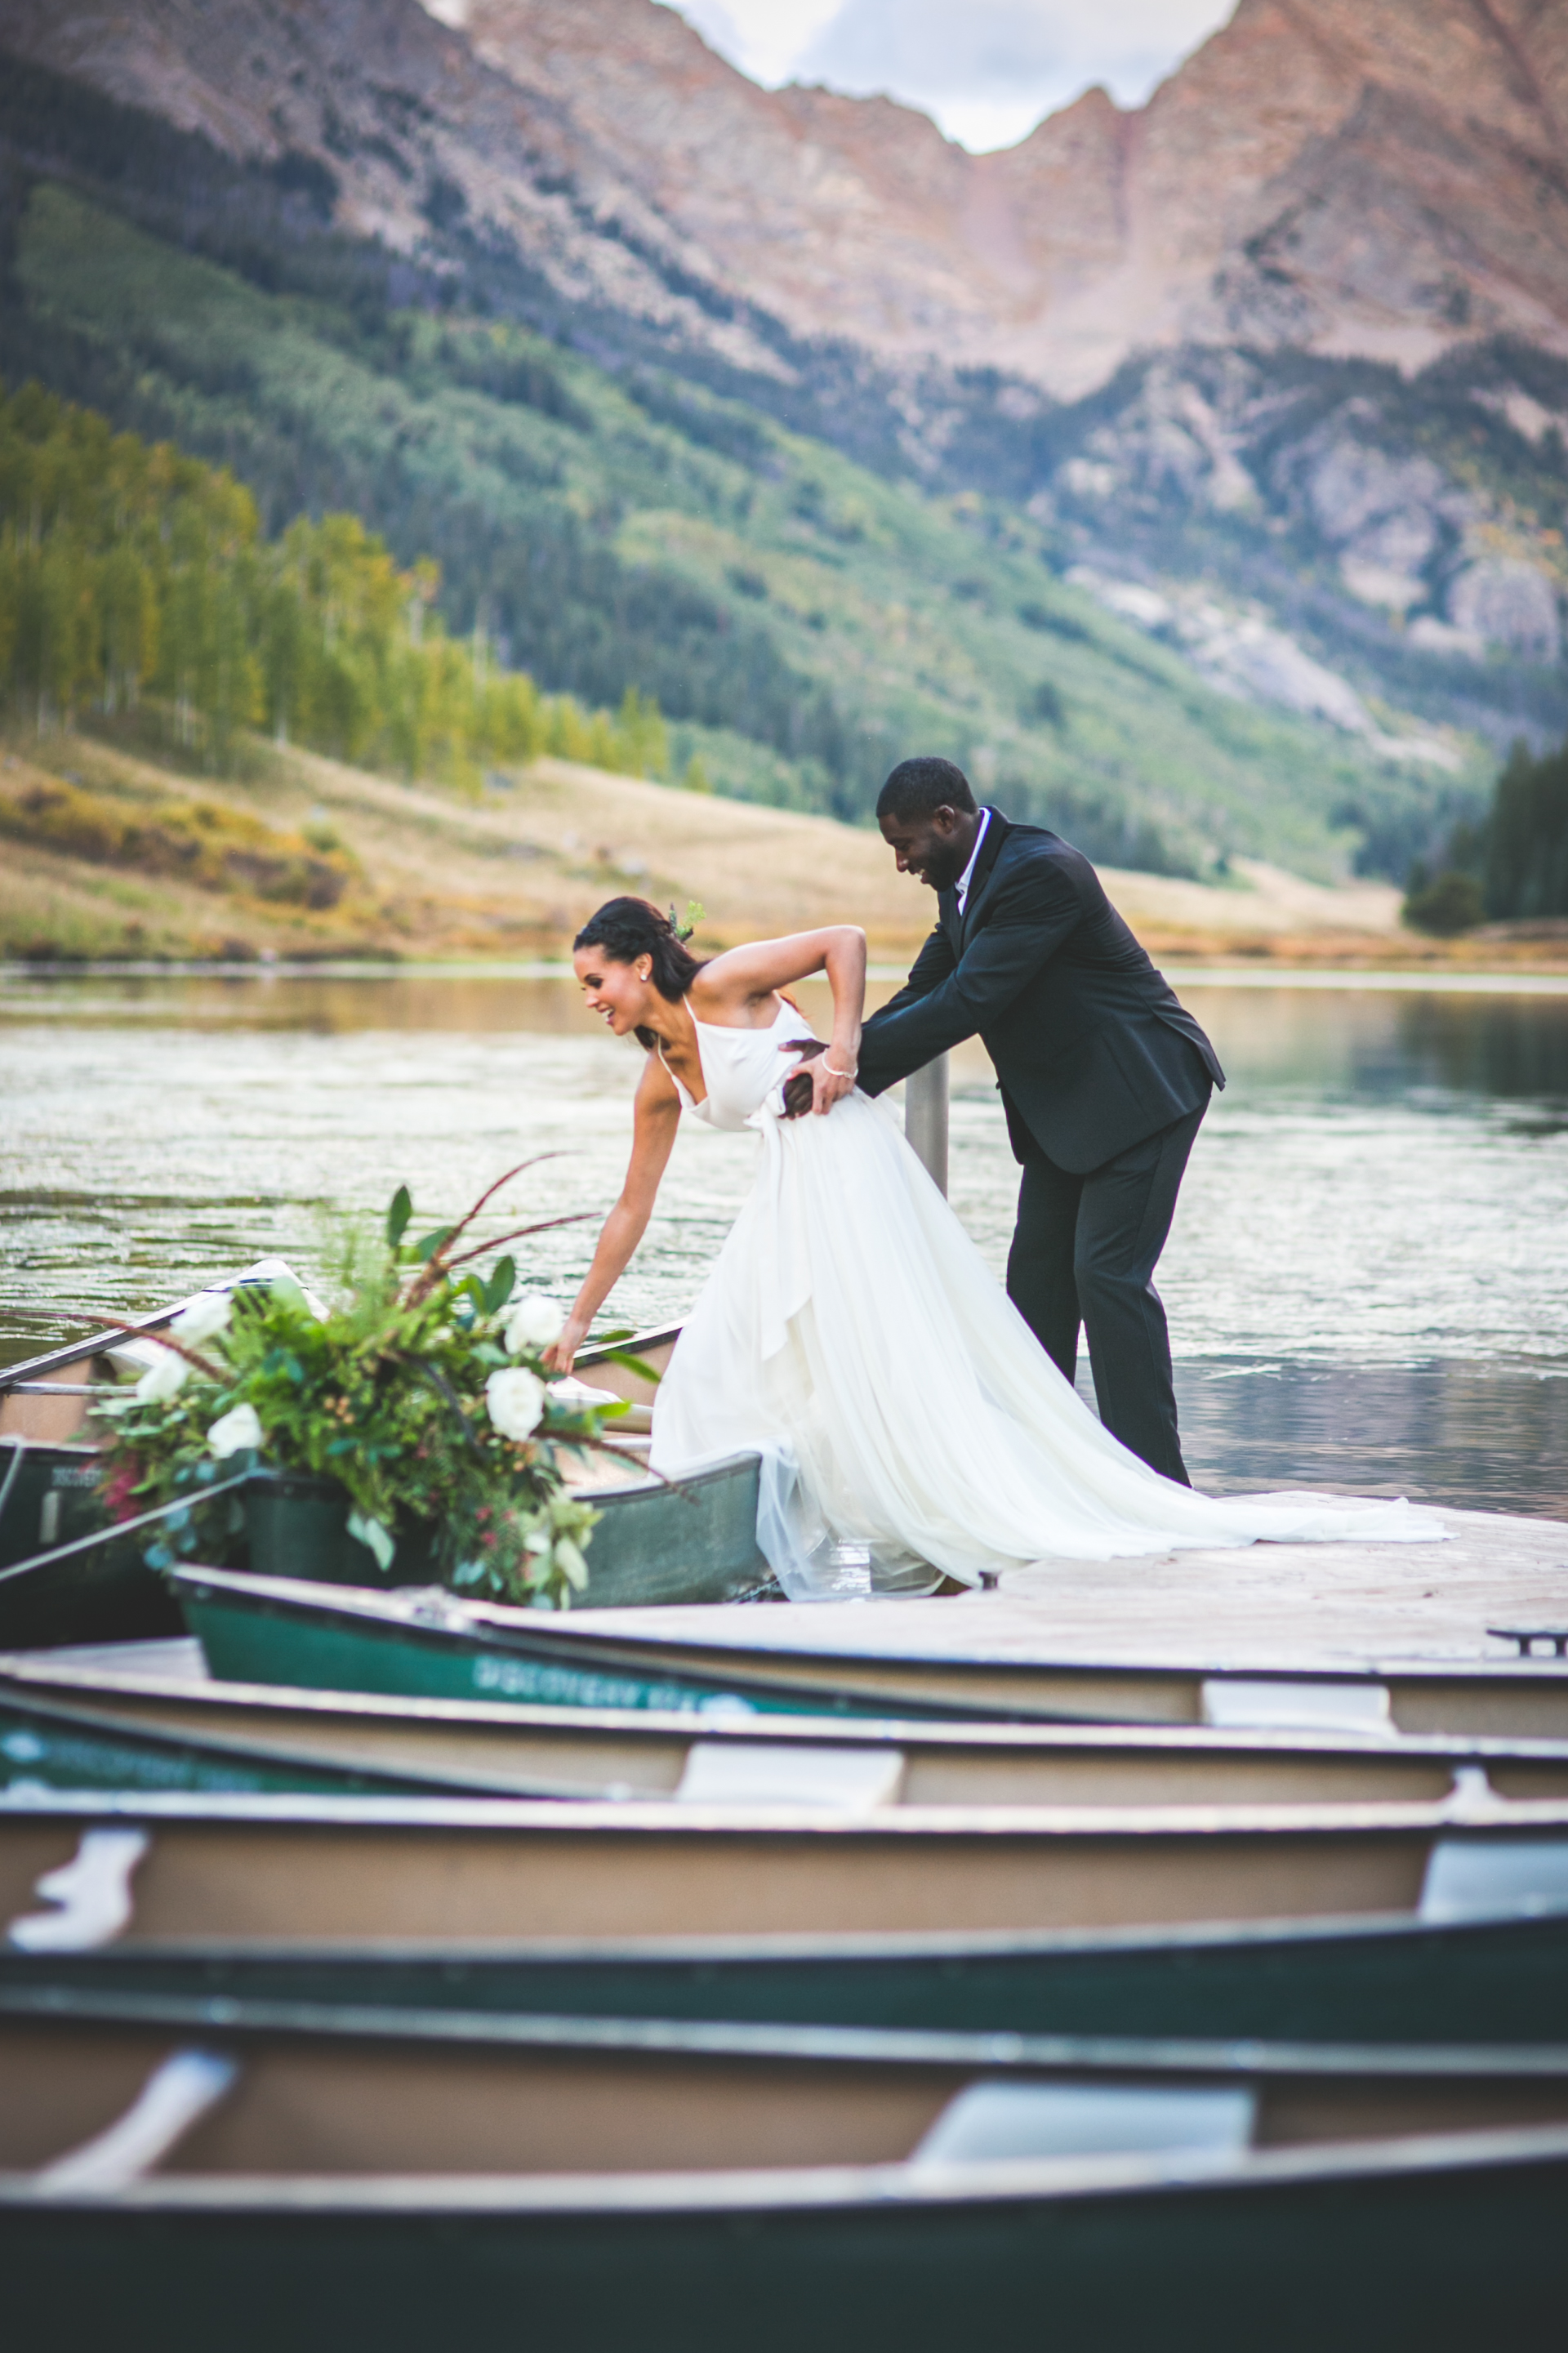 Elopement wedding photos in Bend